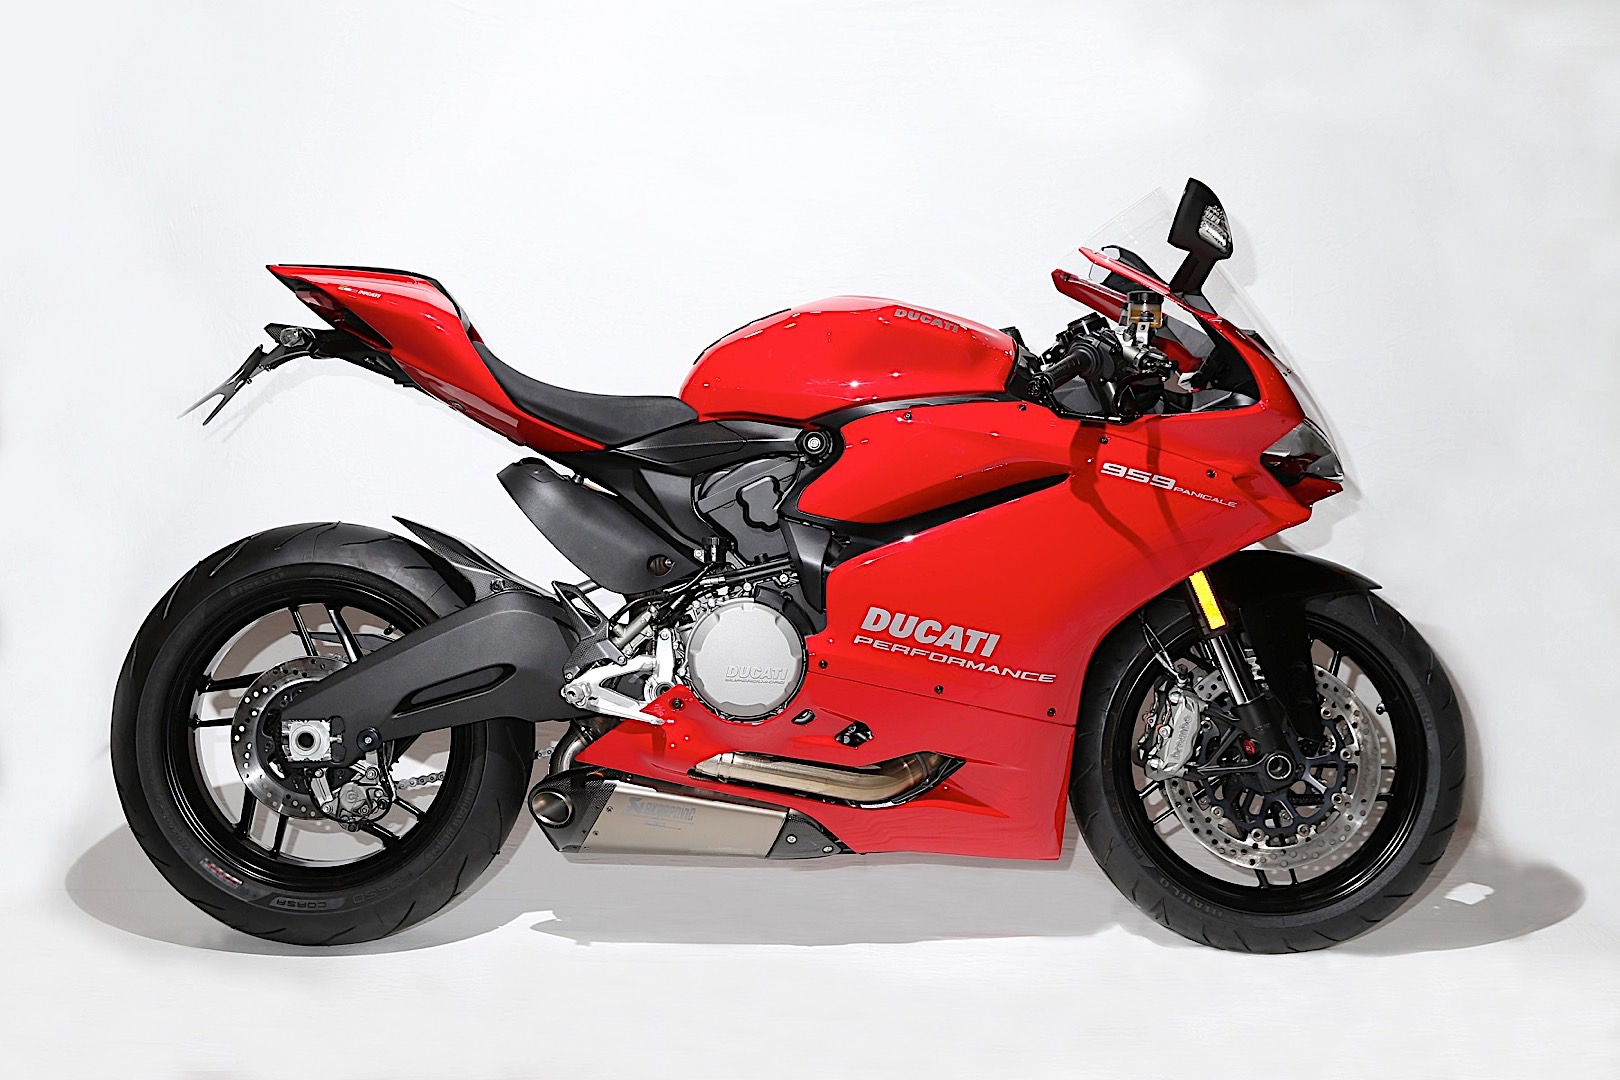 Ducati launches 848 nicky hayden special edition at u. S. Grand.